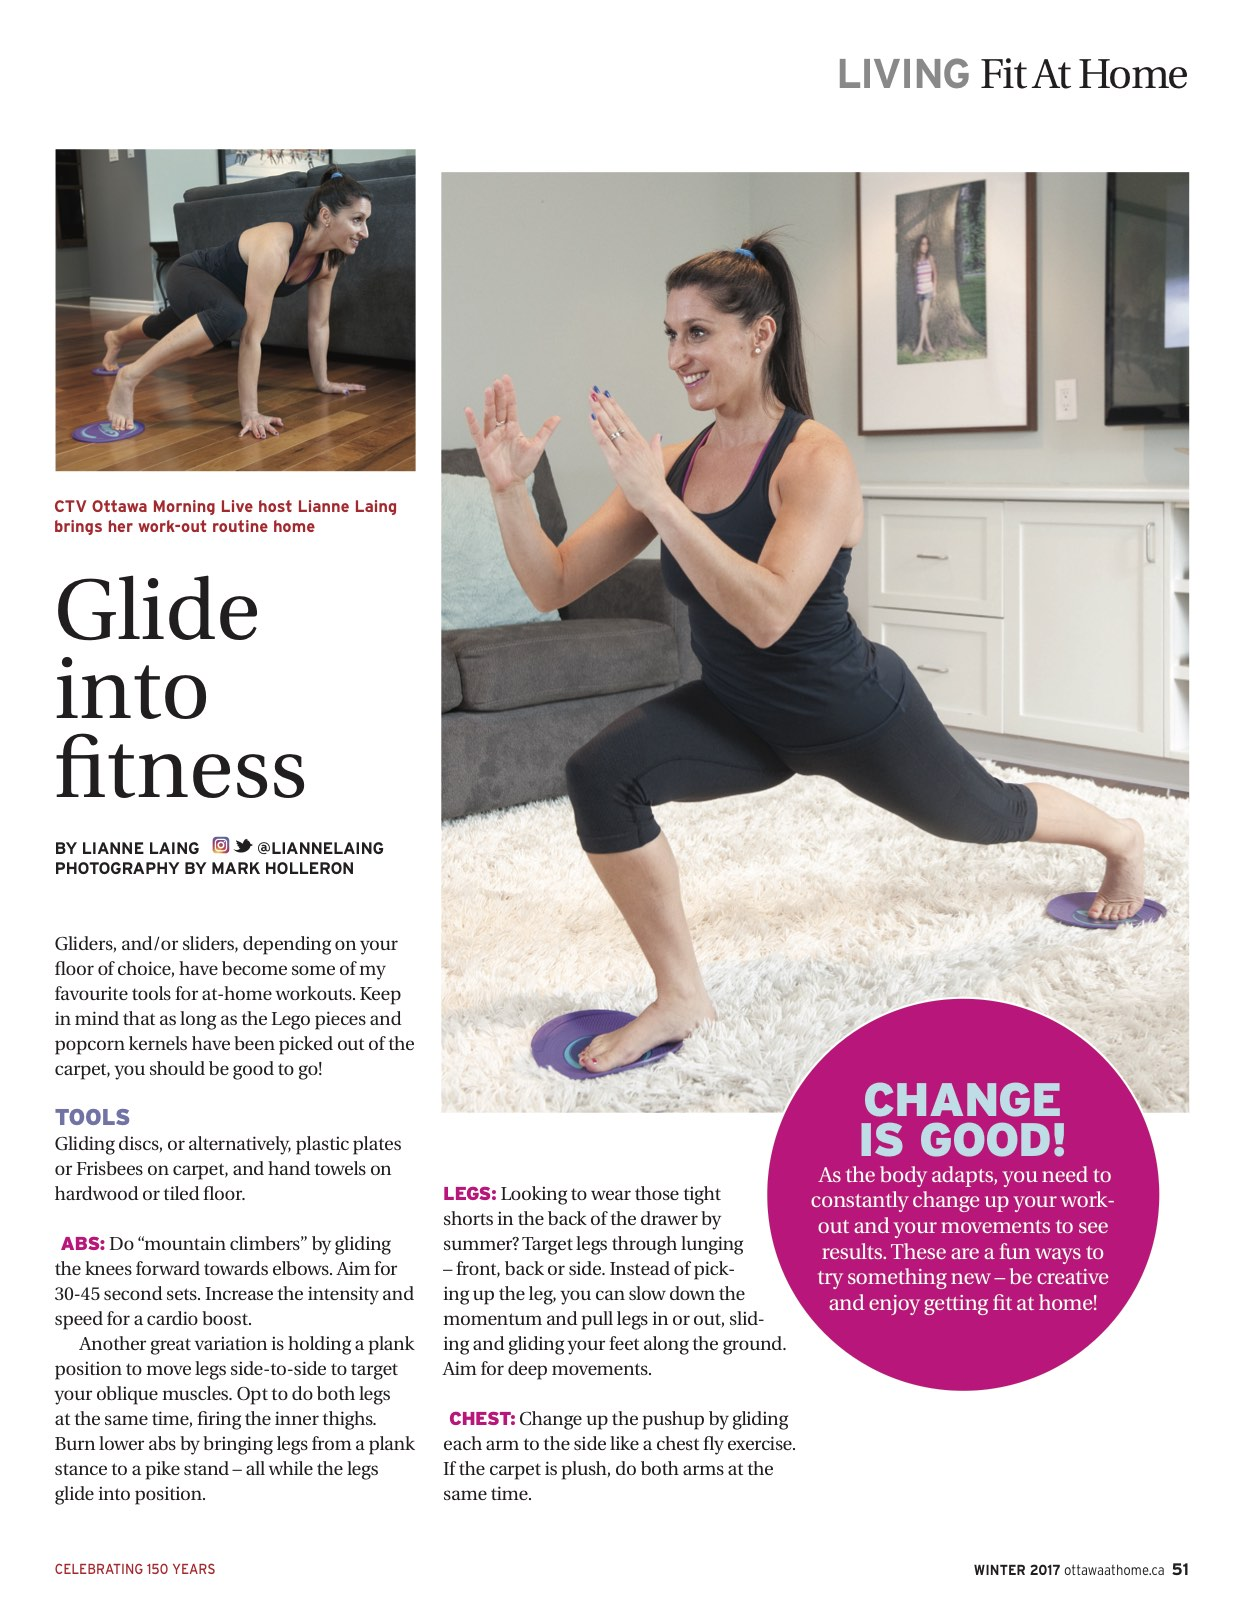 Glide into fitness